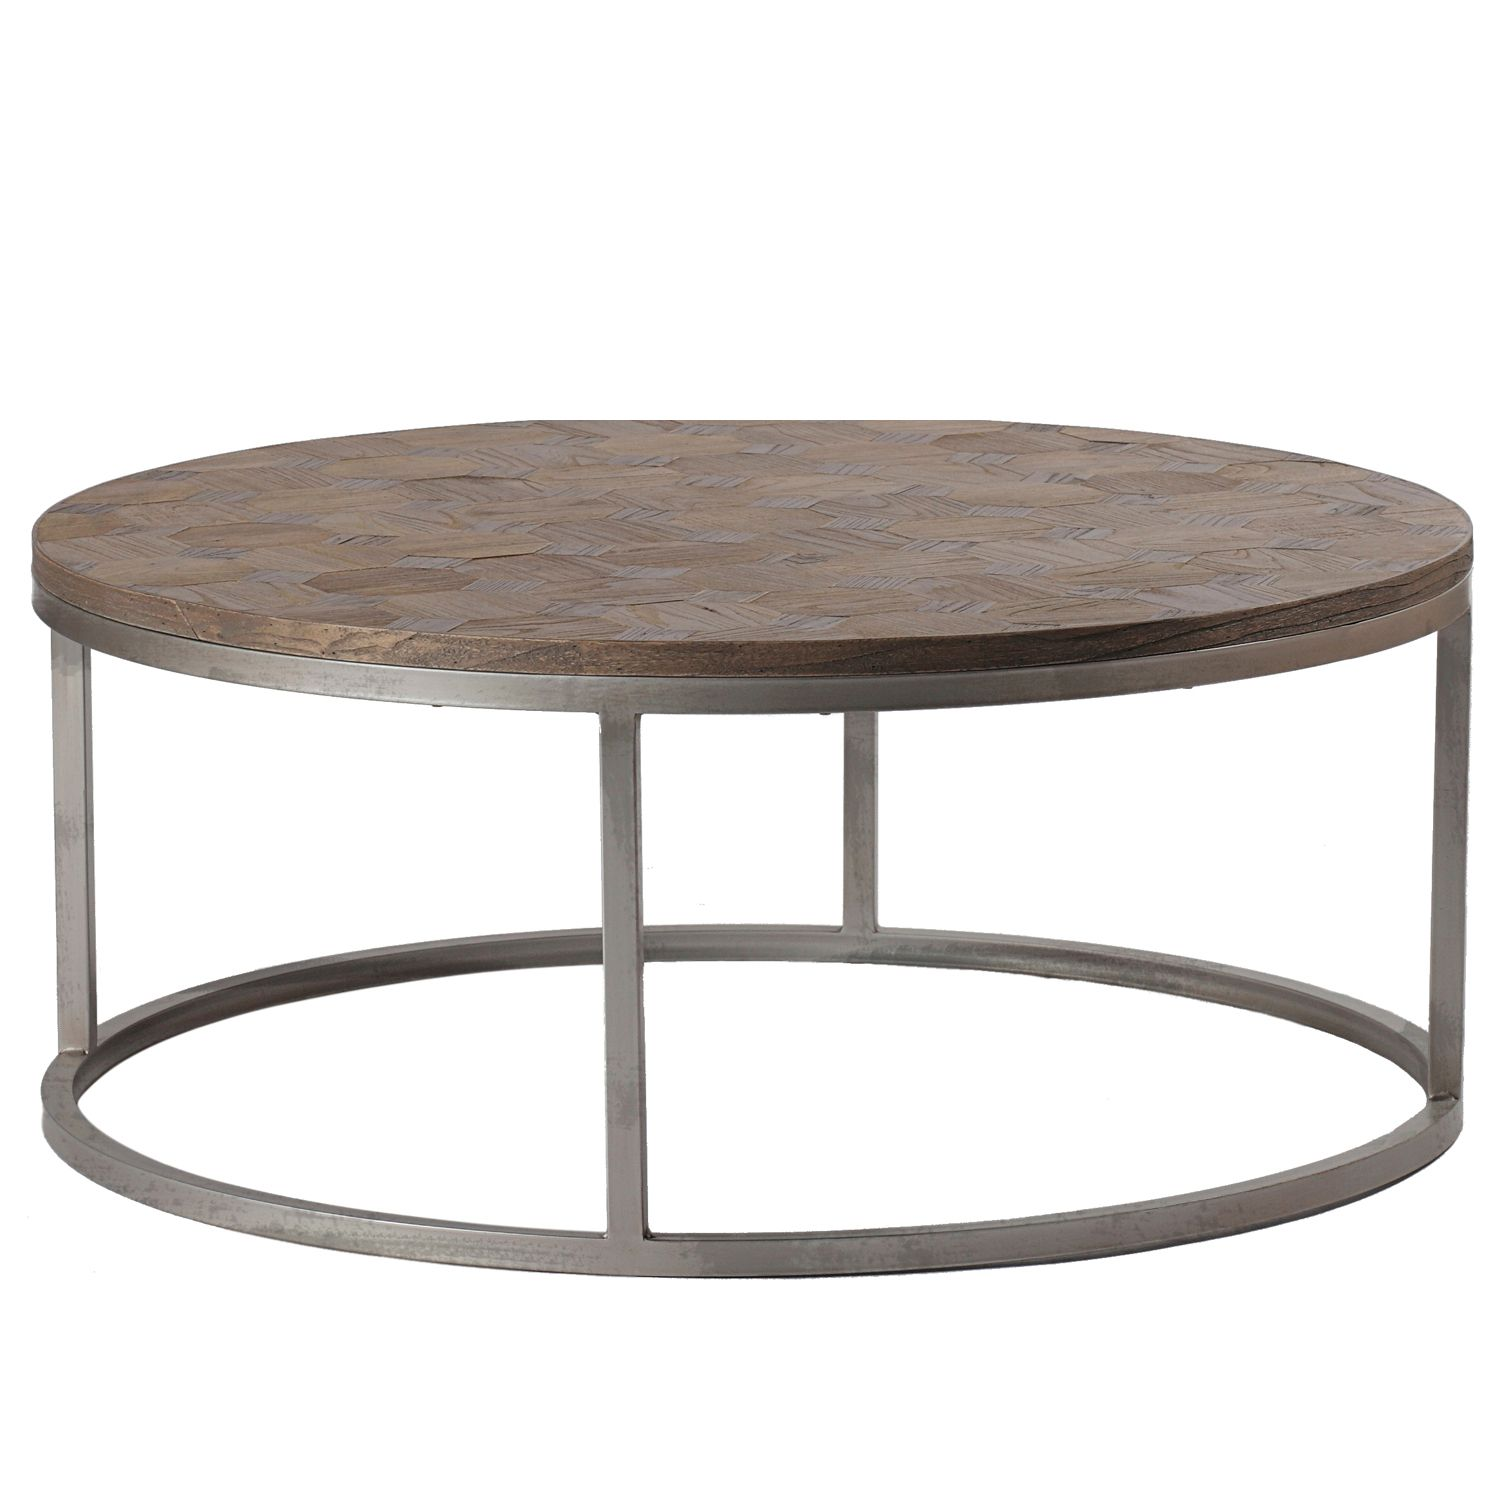 Round Pottery Barn Coffee Table With Adjustable Wrought Iron Legs And Parquet Round Wood Coffee Table Coffee Table Wicker Coffee Table [ 921 x 1024 Pixel ]